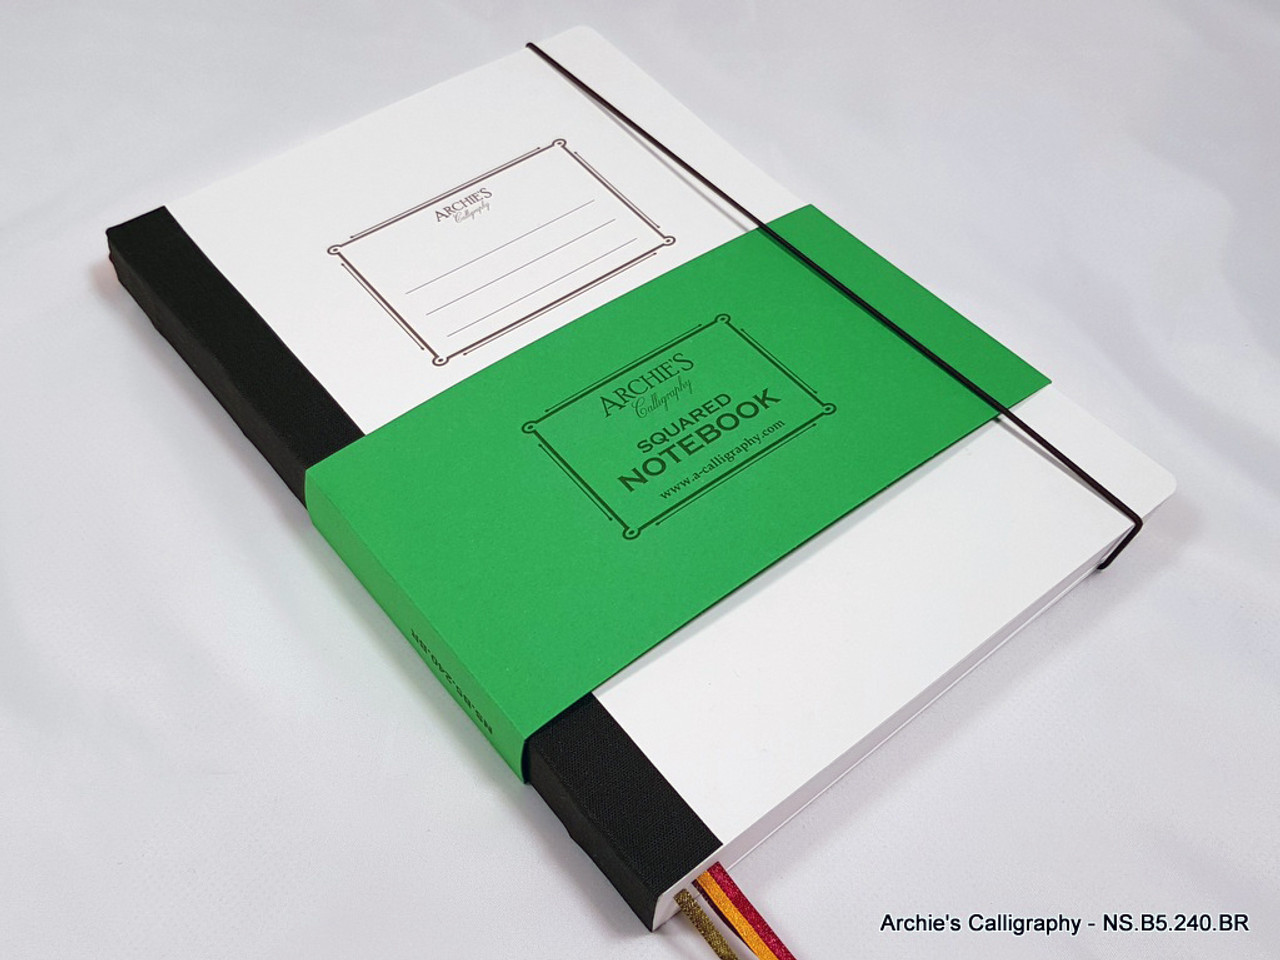 Archie's Calligraphy notebook refill, squared paper